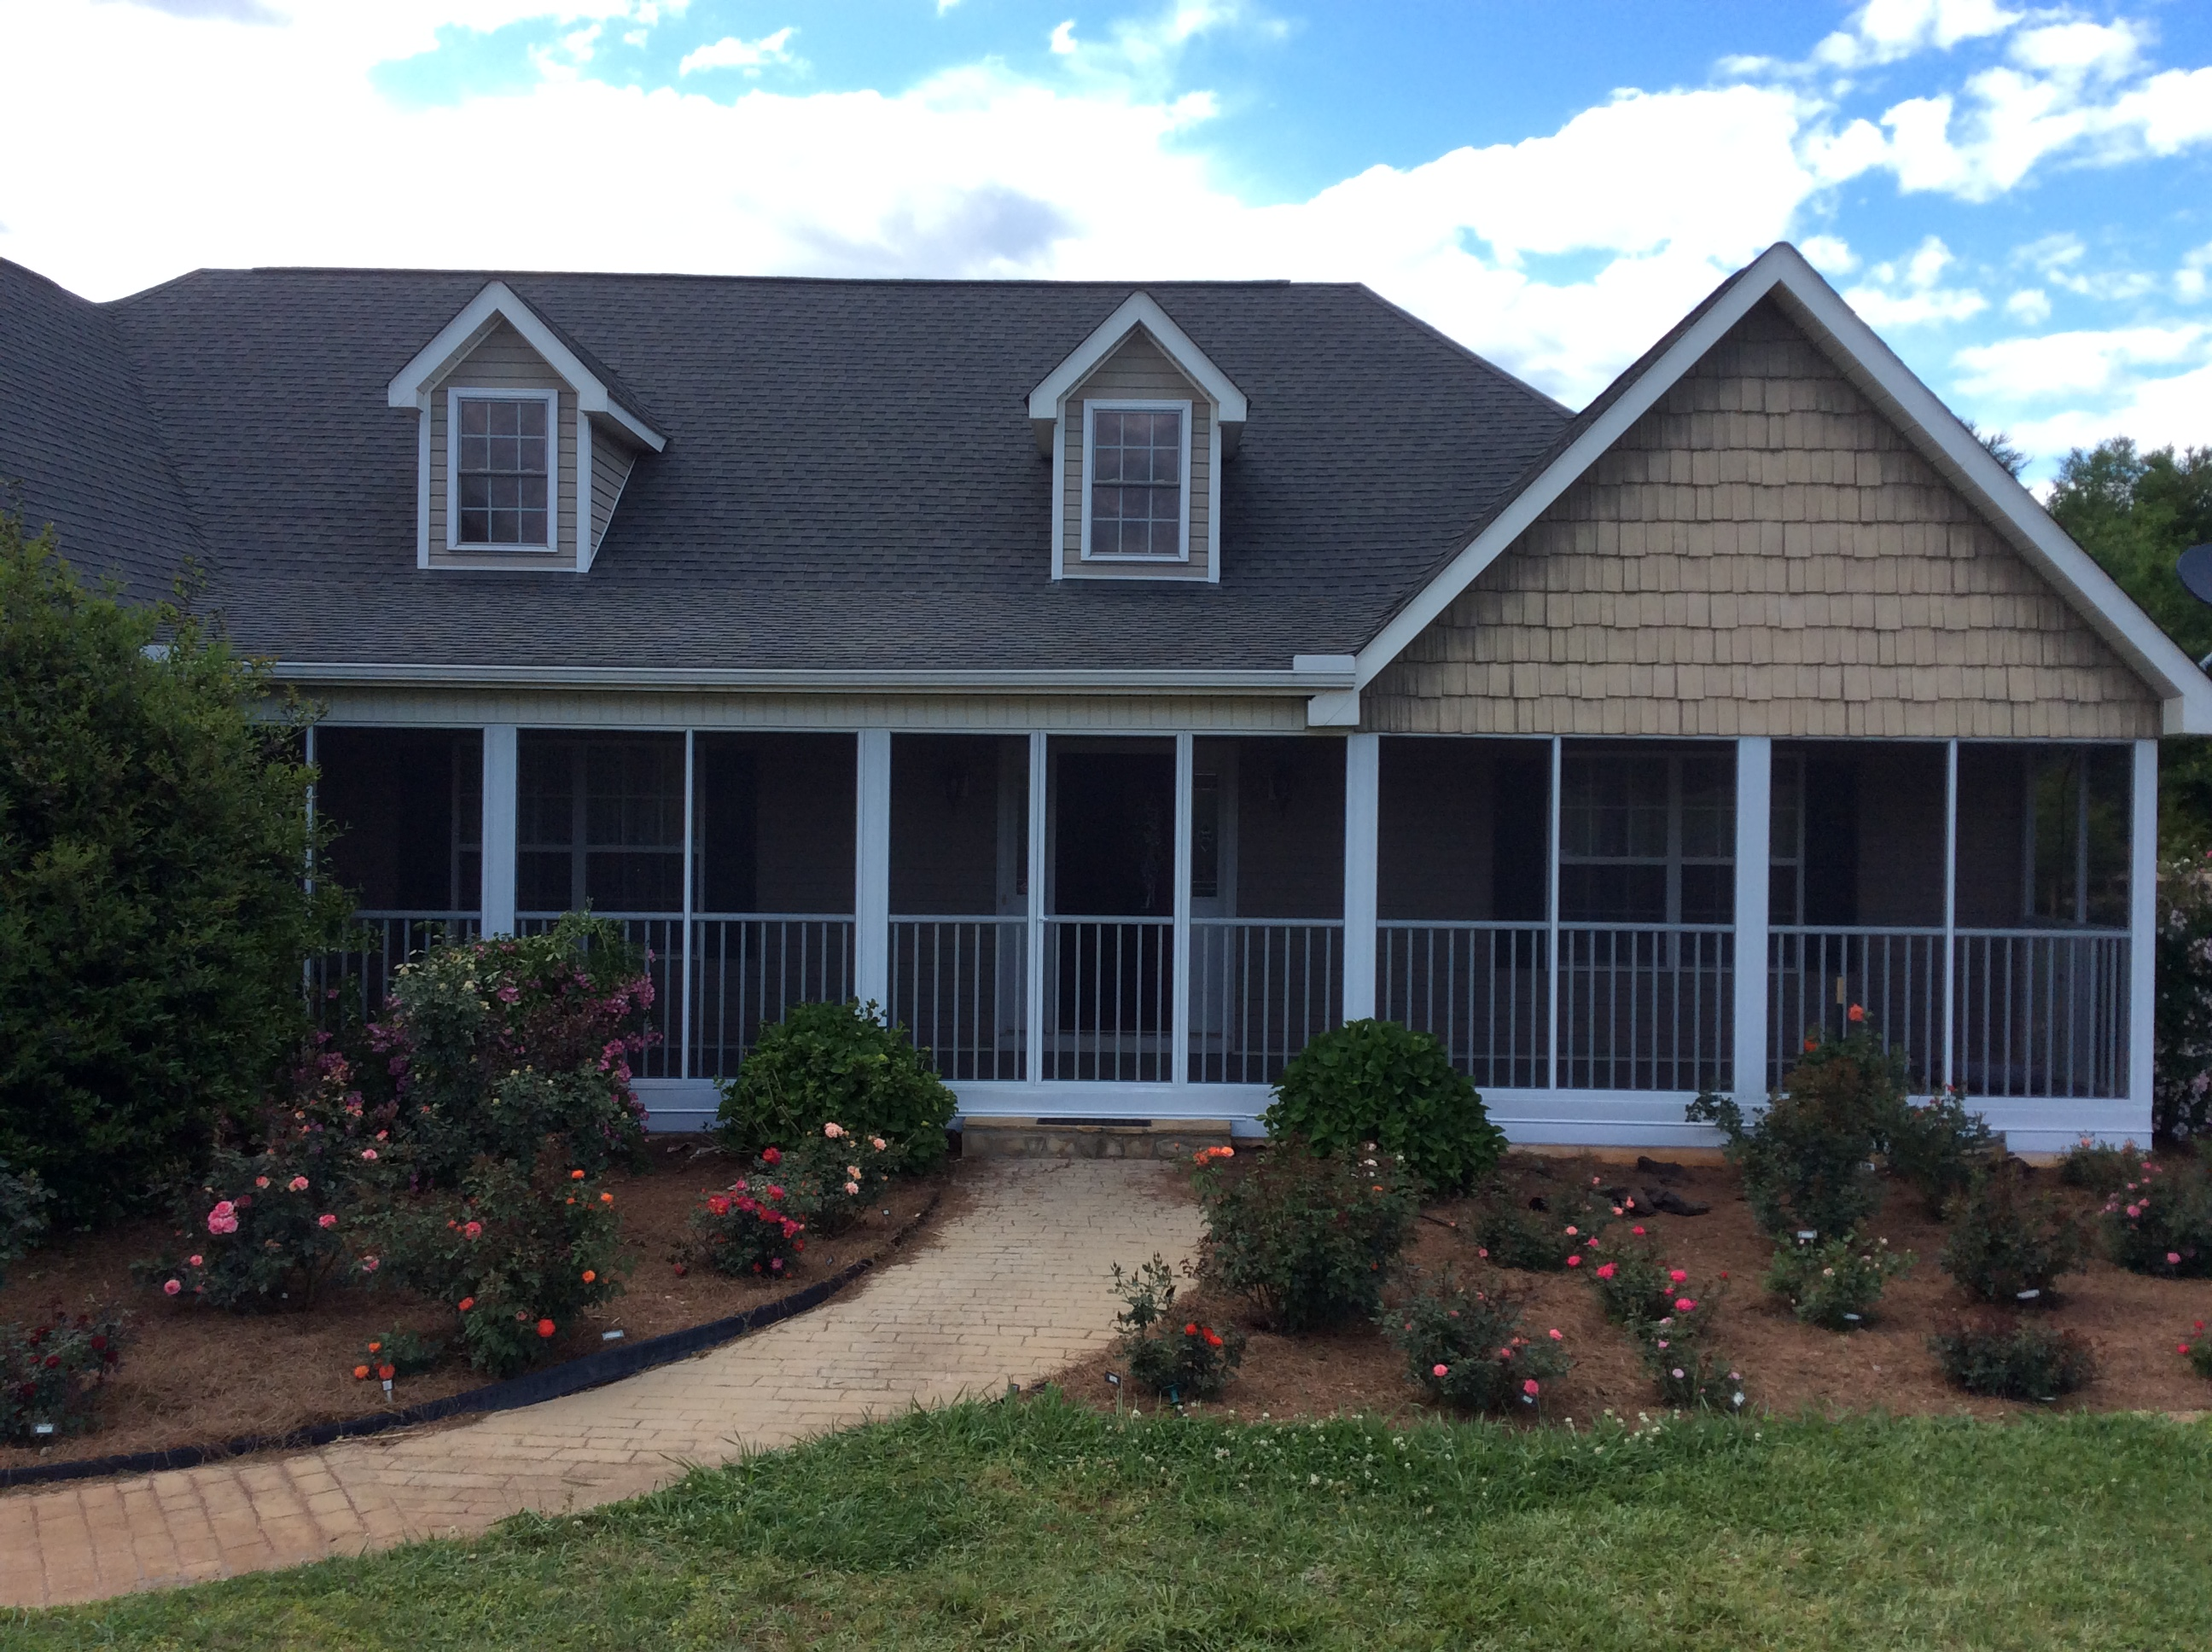 Greenville Aluminum Products 2427 New Easley Hwy Greenville Sc 29611